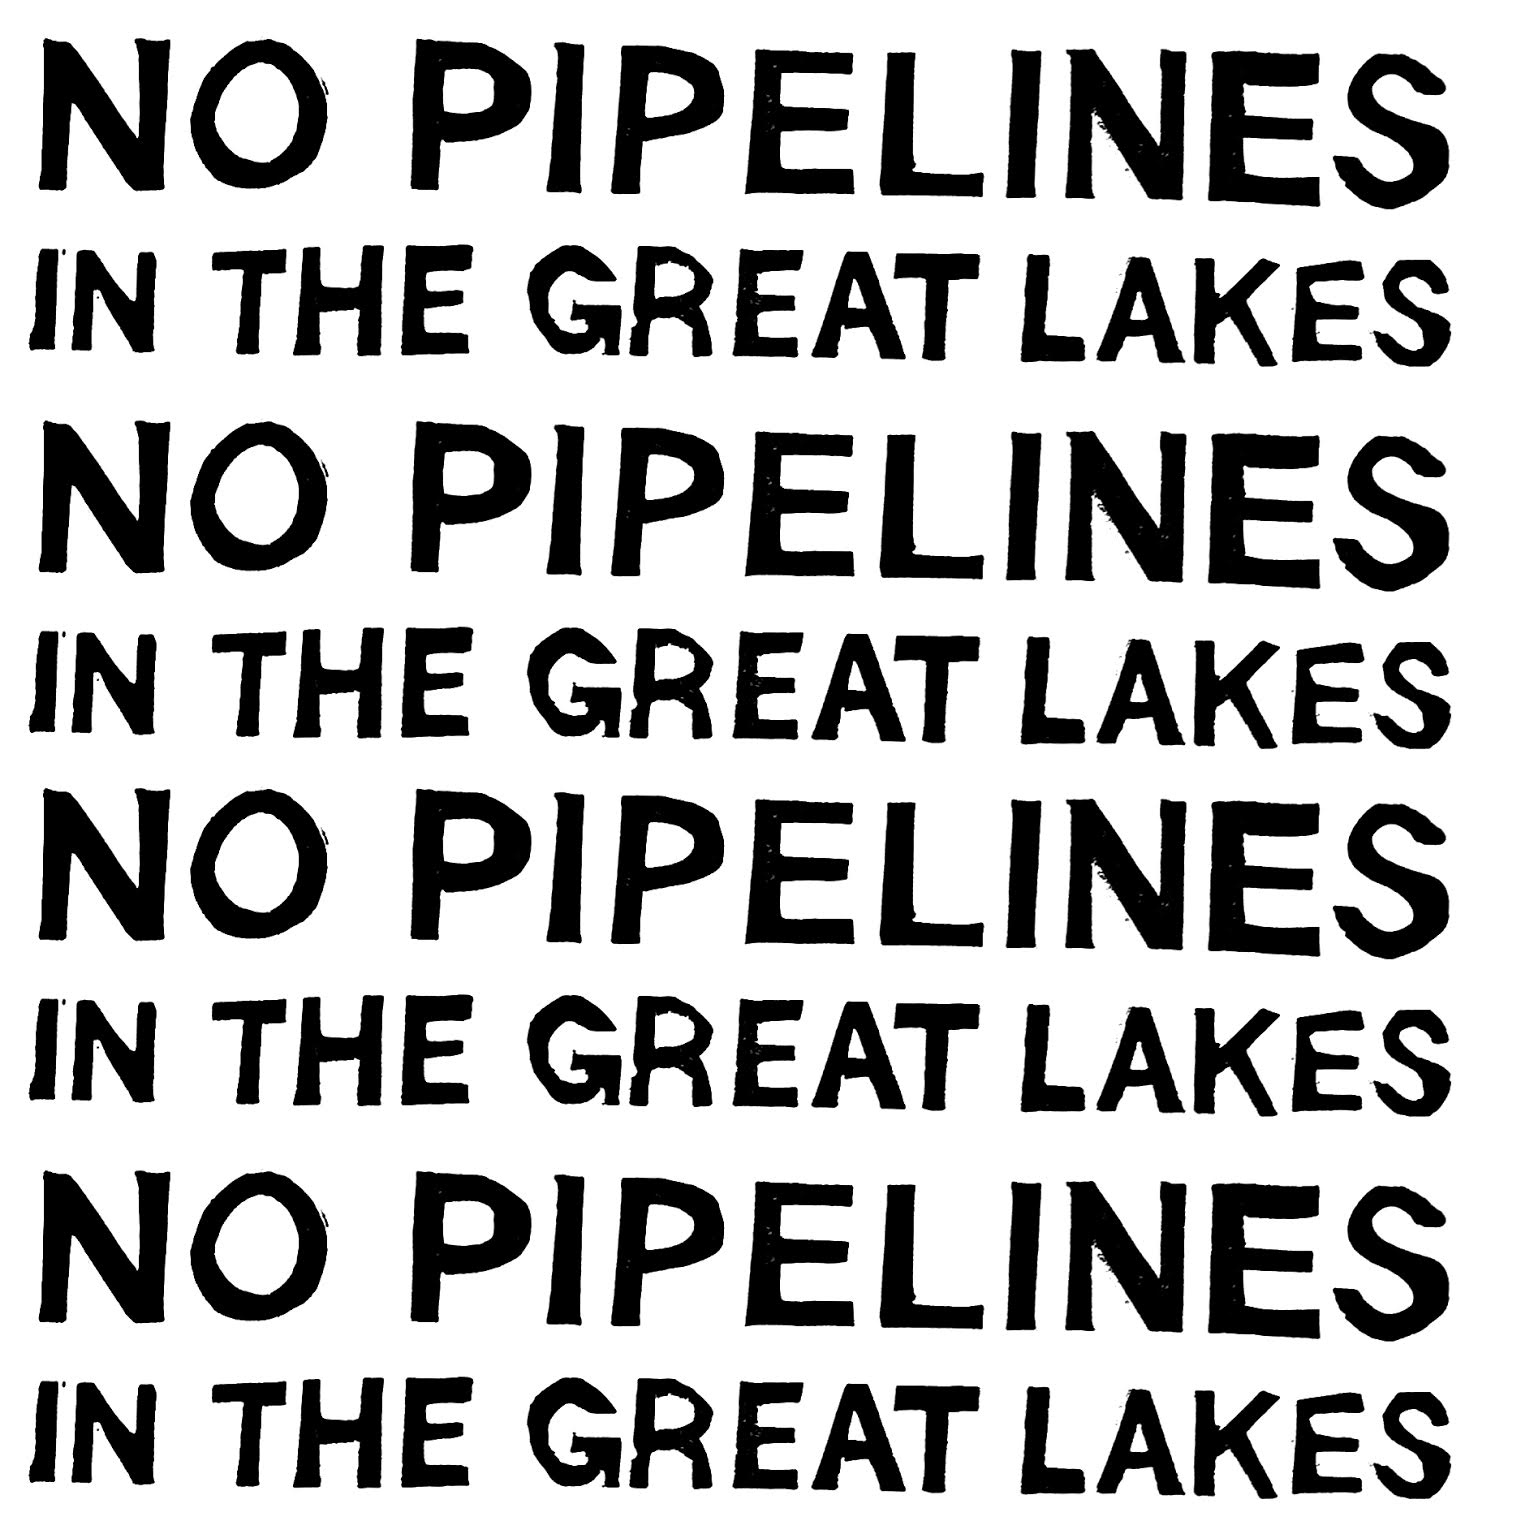 23d_dylan-miner_no-pipelines-in-the-great-lakes